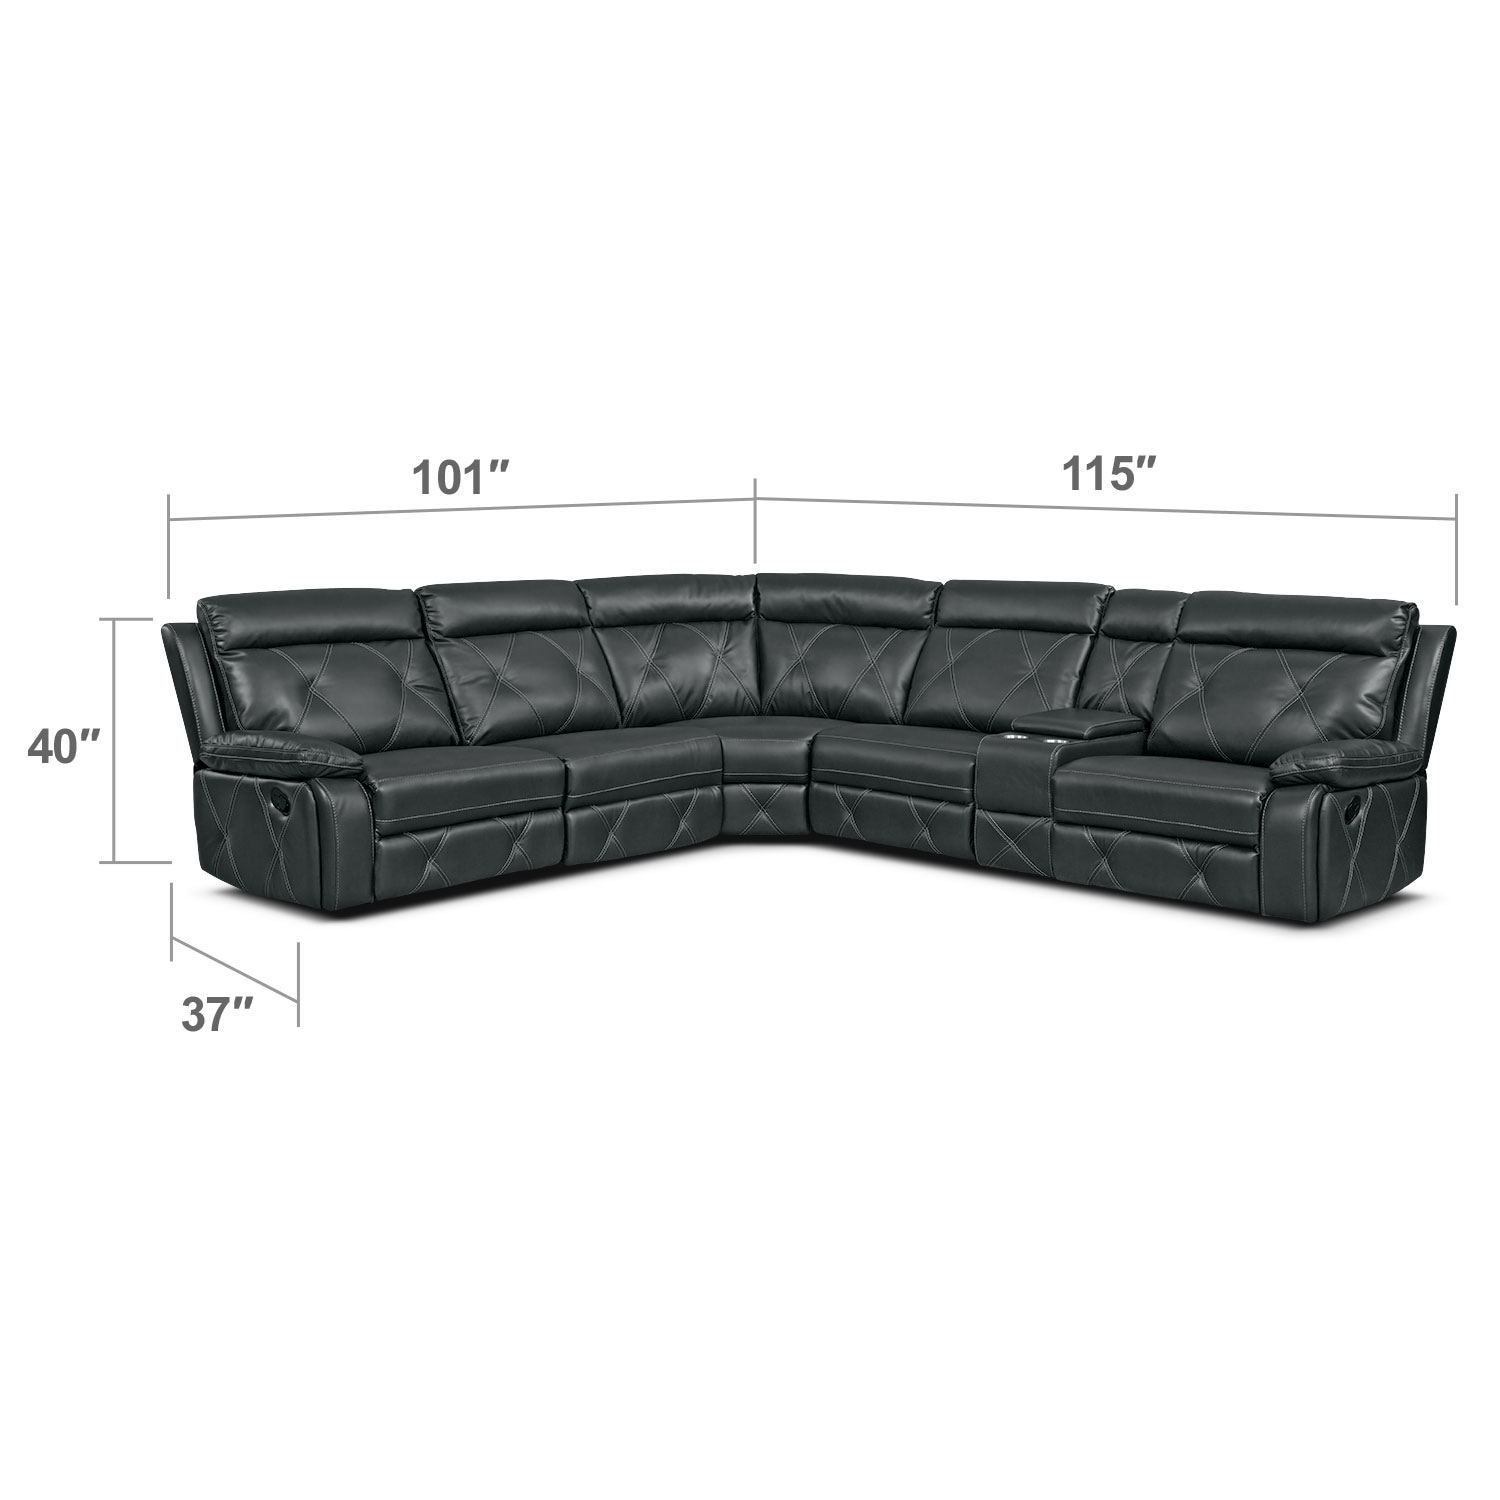 Living Room Furniture - Dante 6-Piece Reclining Sectional with 2 Reclining Seats - Charcoal